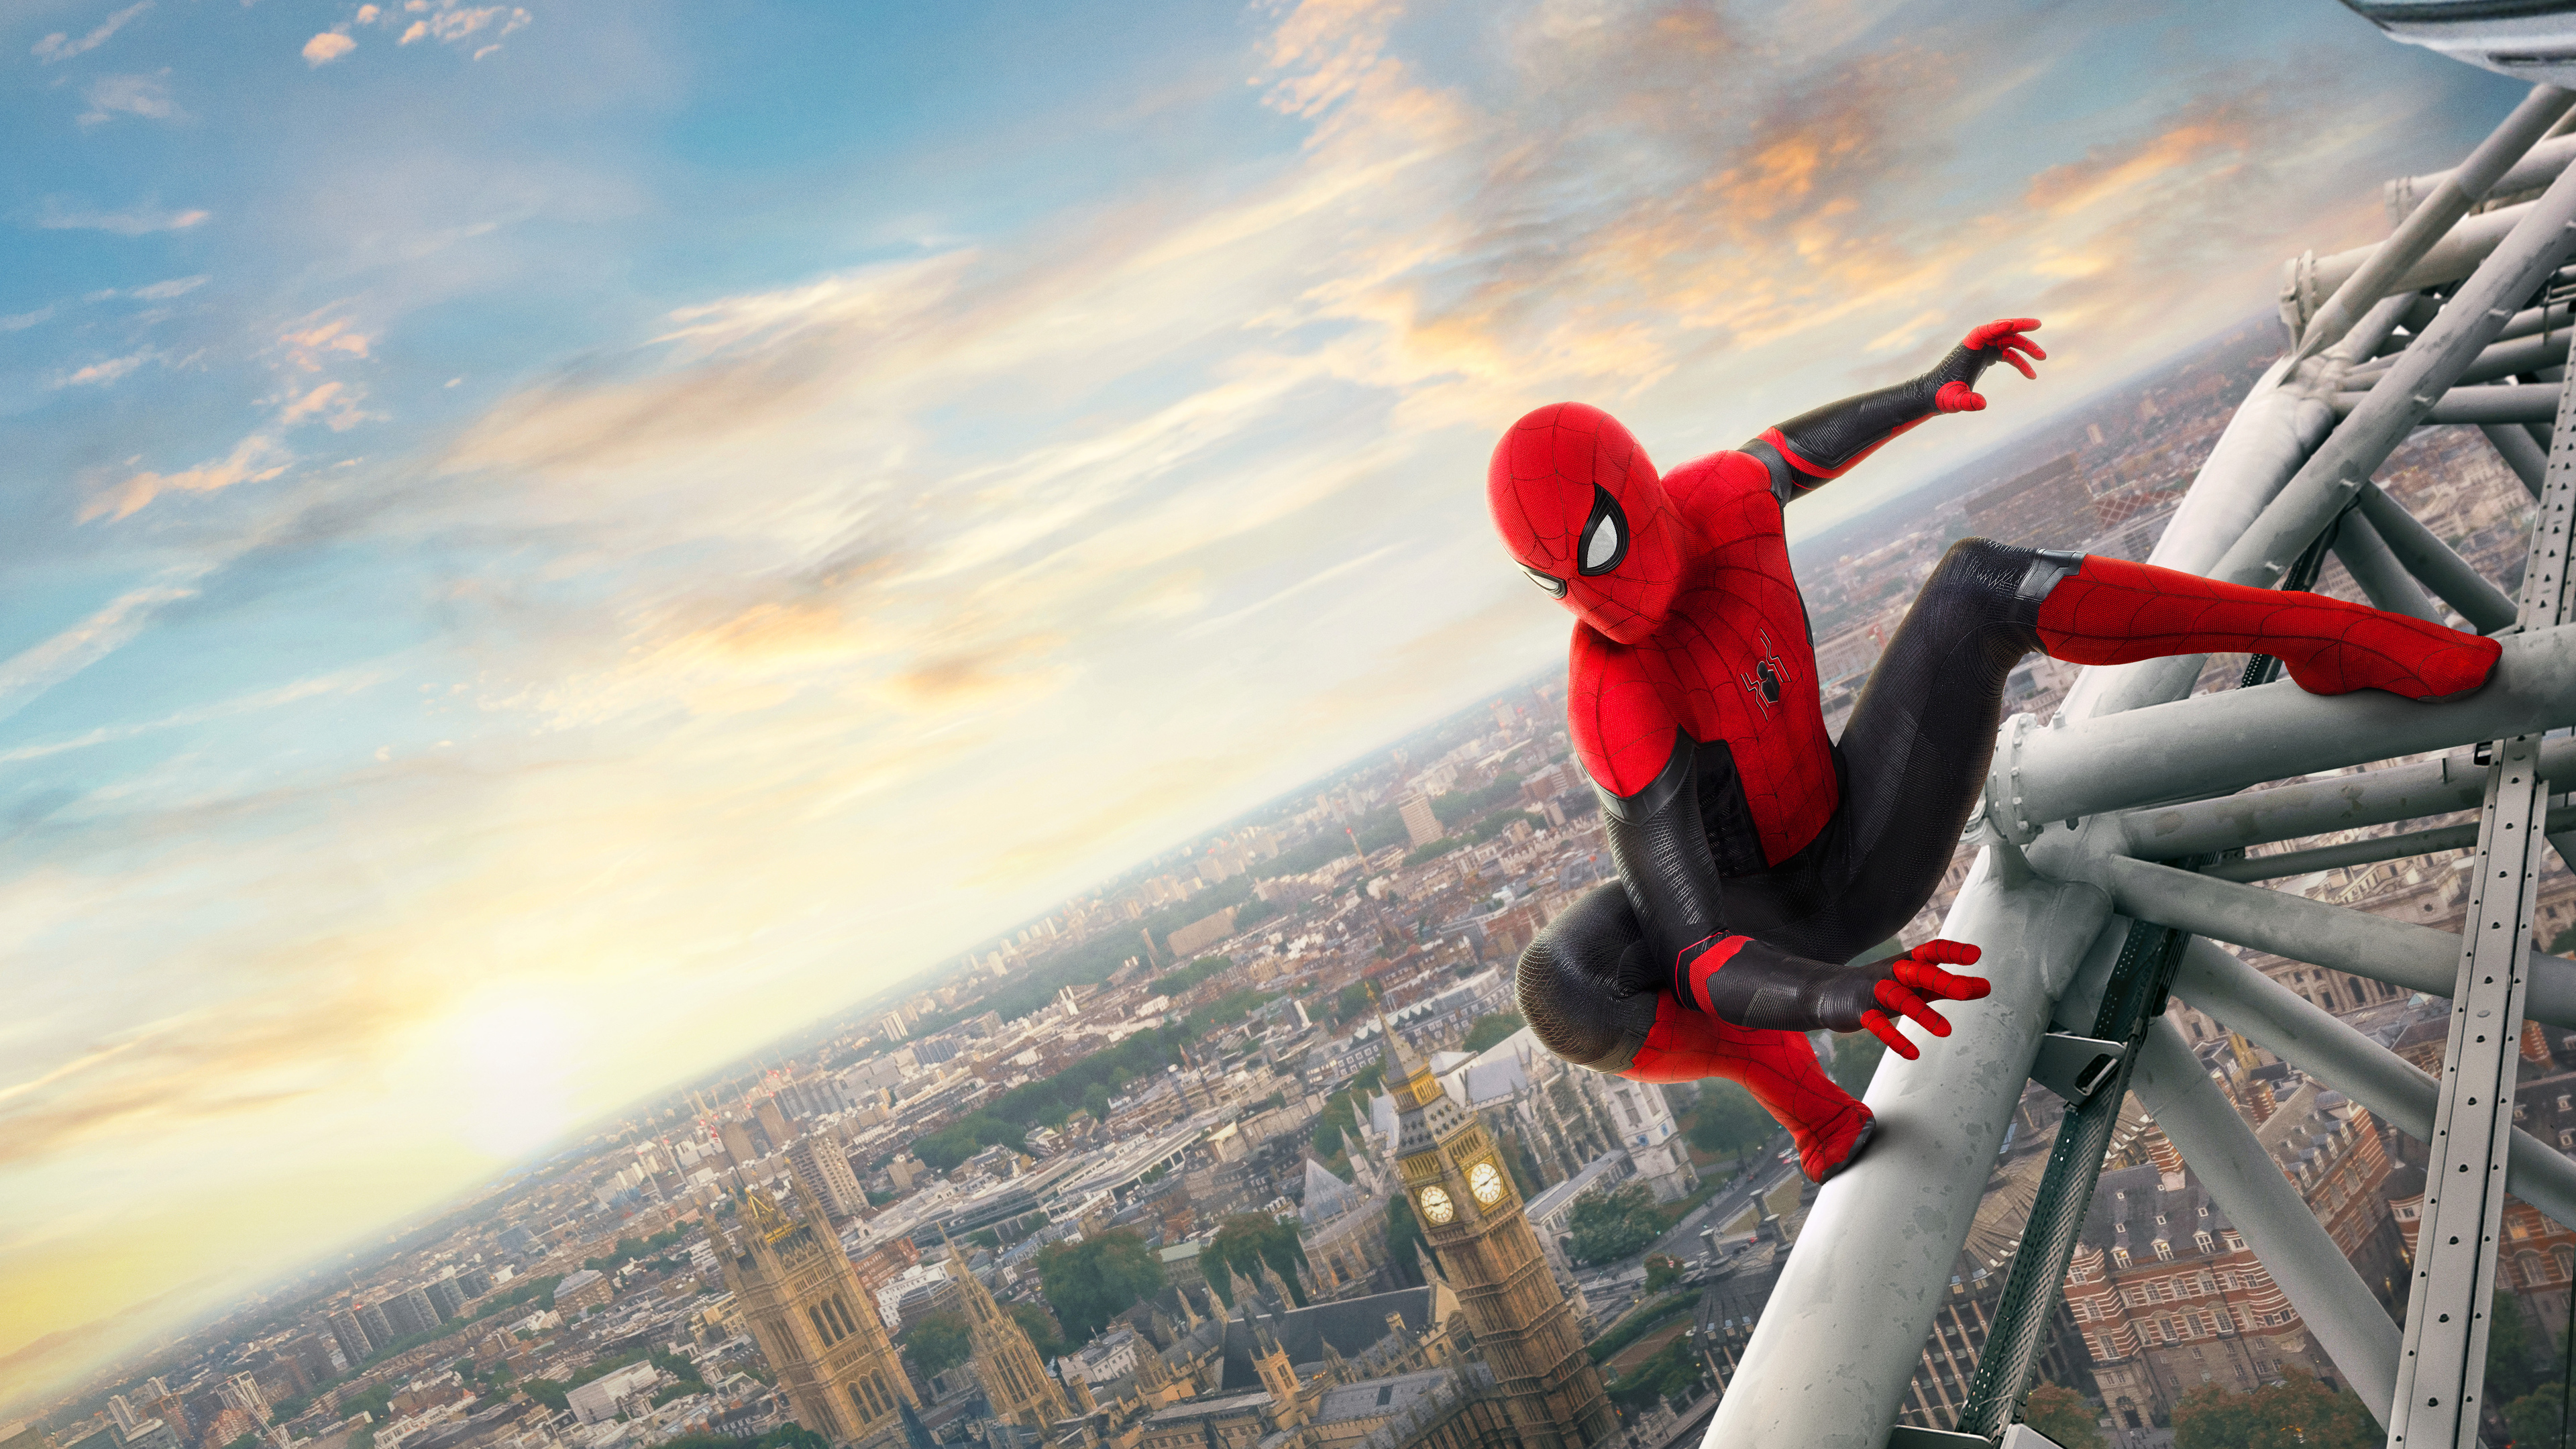 4k spider man far from home 1555208792 - 4k Spider Man Far From Home - tom holland wallpapers, superheroes wallpapers, spiderman wallpapers, spiderman far from home wallpapers, movies wallpapers, hd-wallpapers, 4k-wallpapers, 2019 movies wallpapers